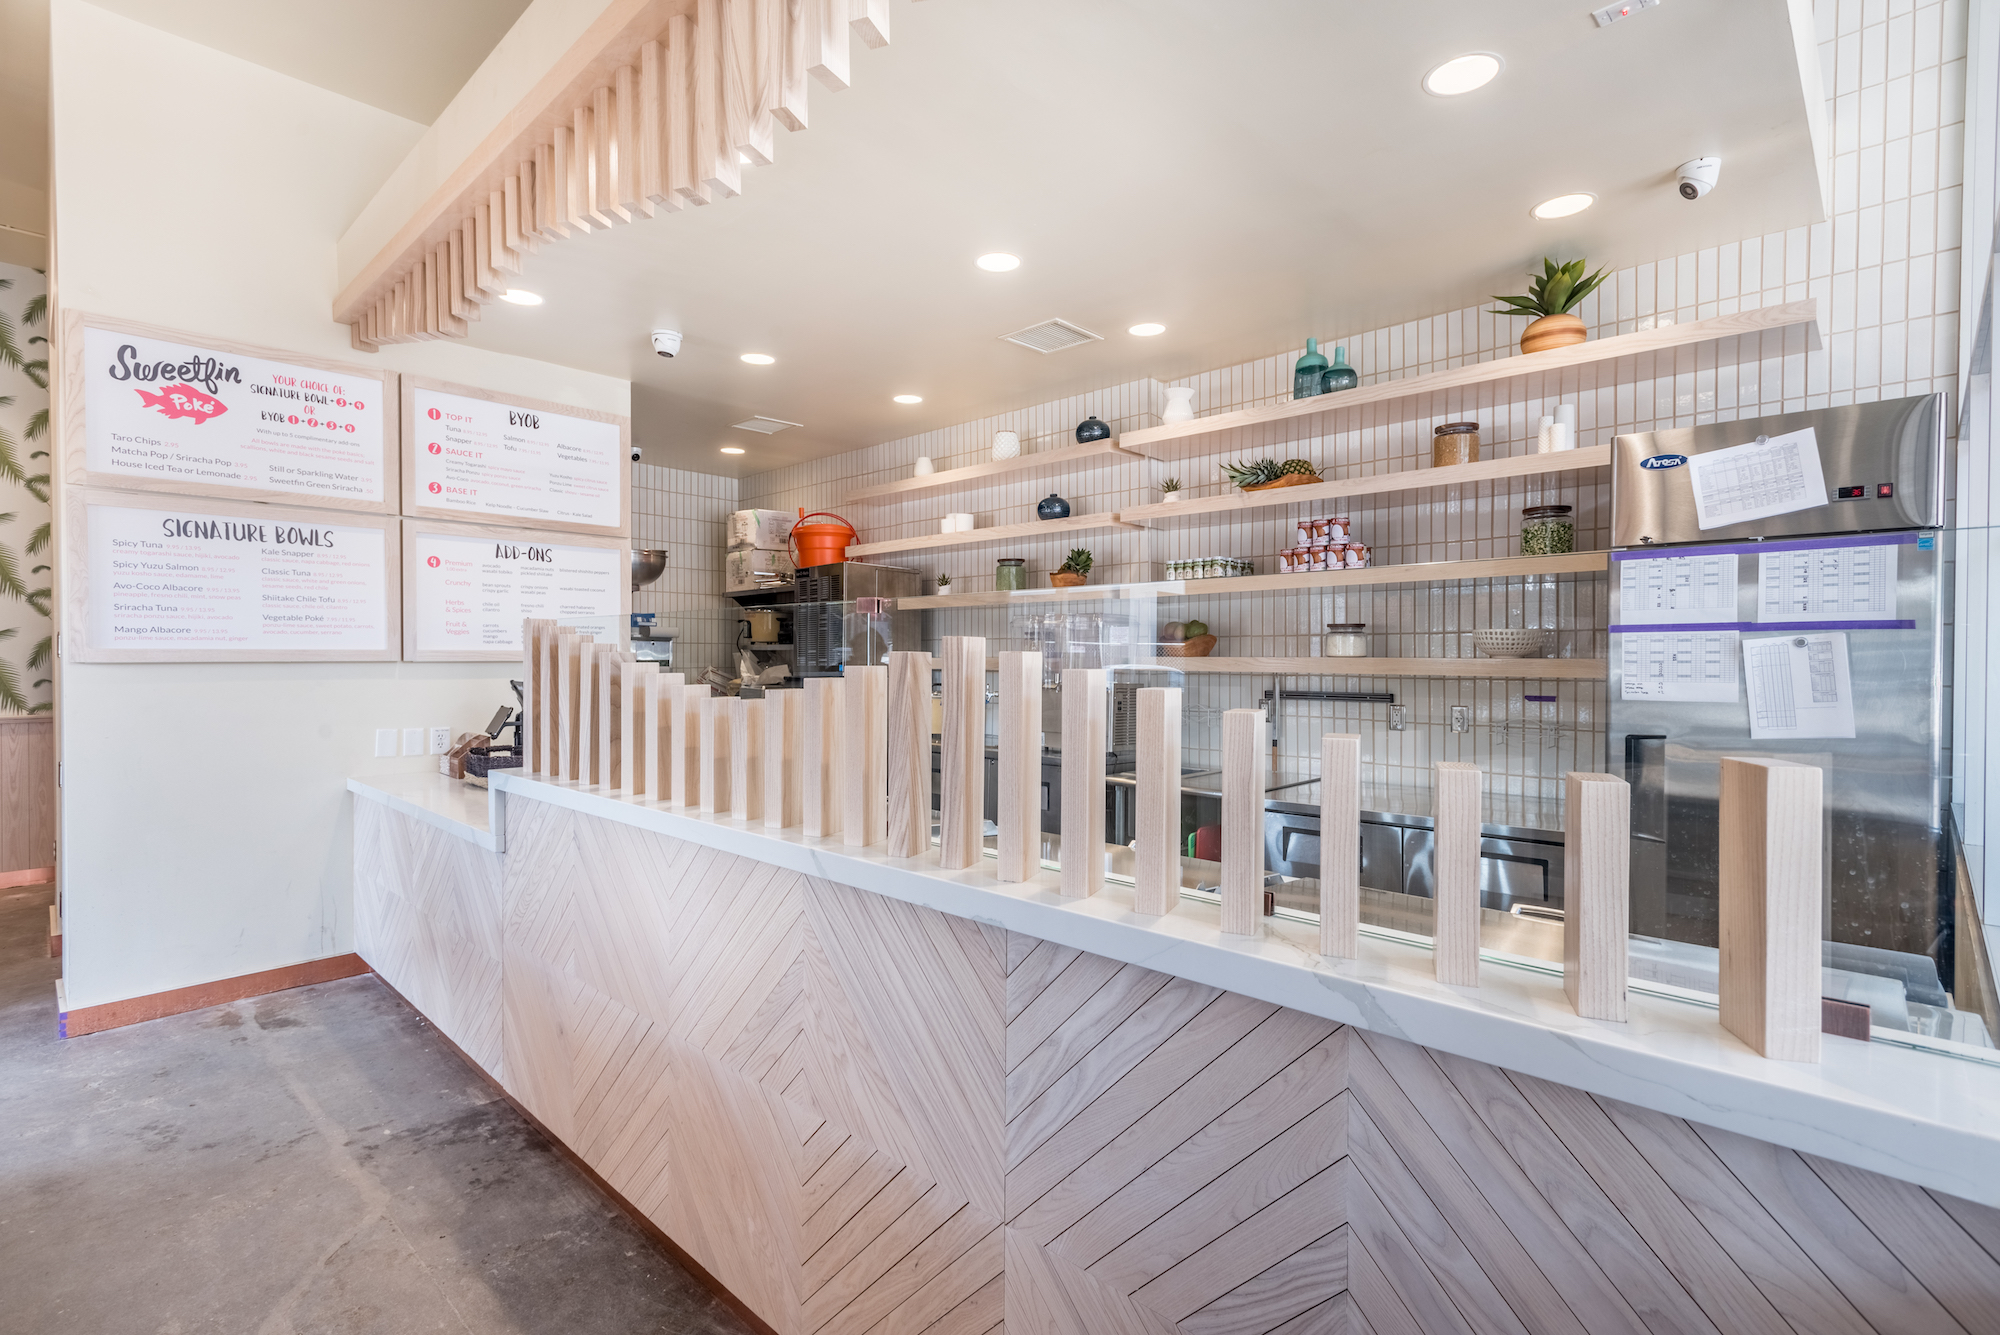 sweetfin rides a poke wave into sunny silver lake today - eater la